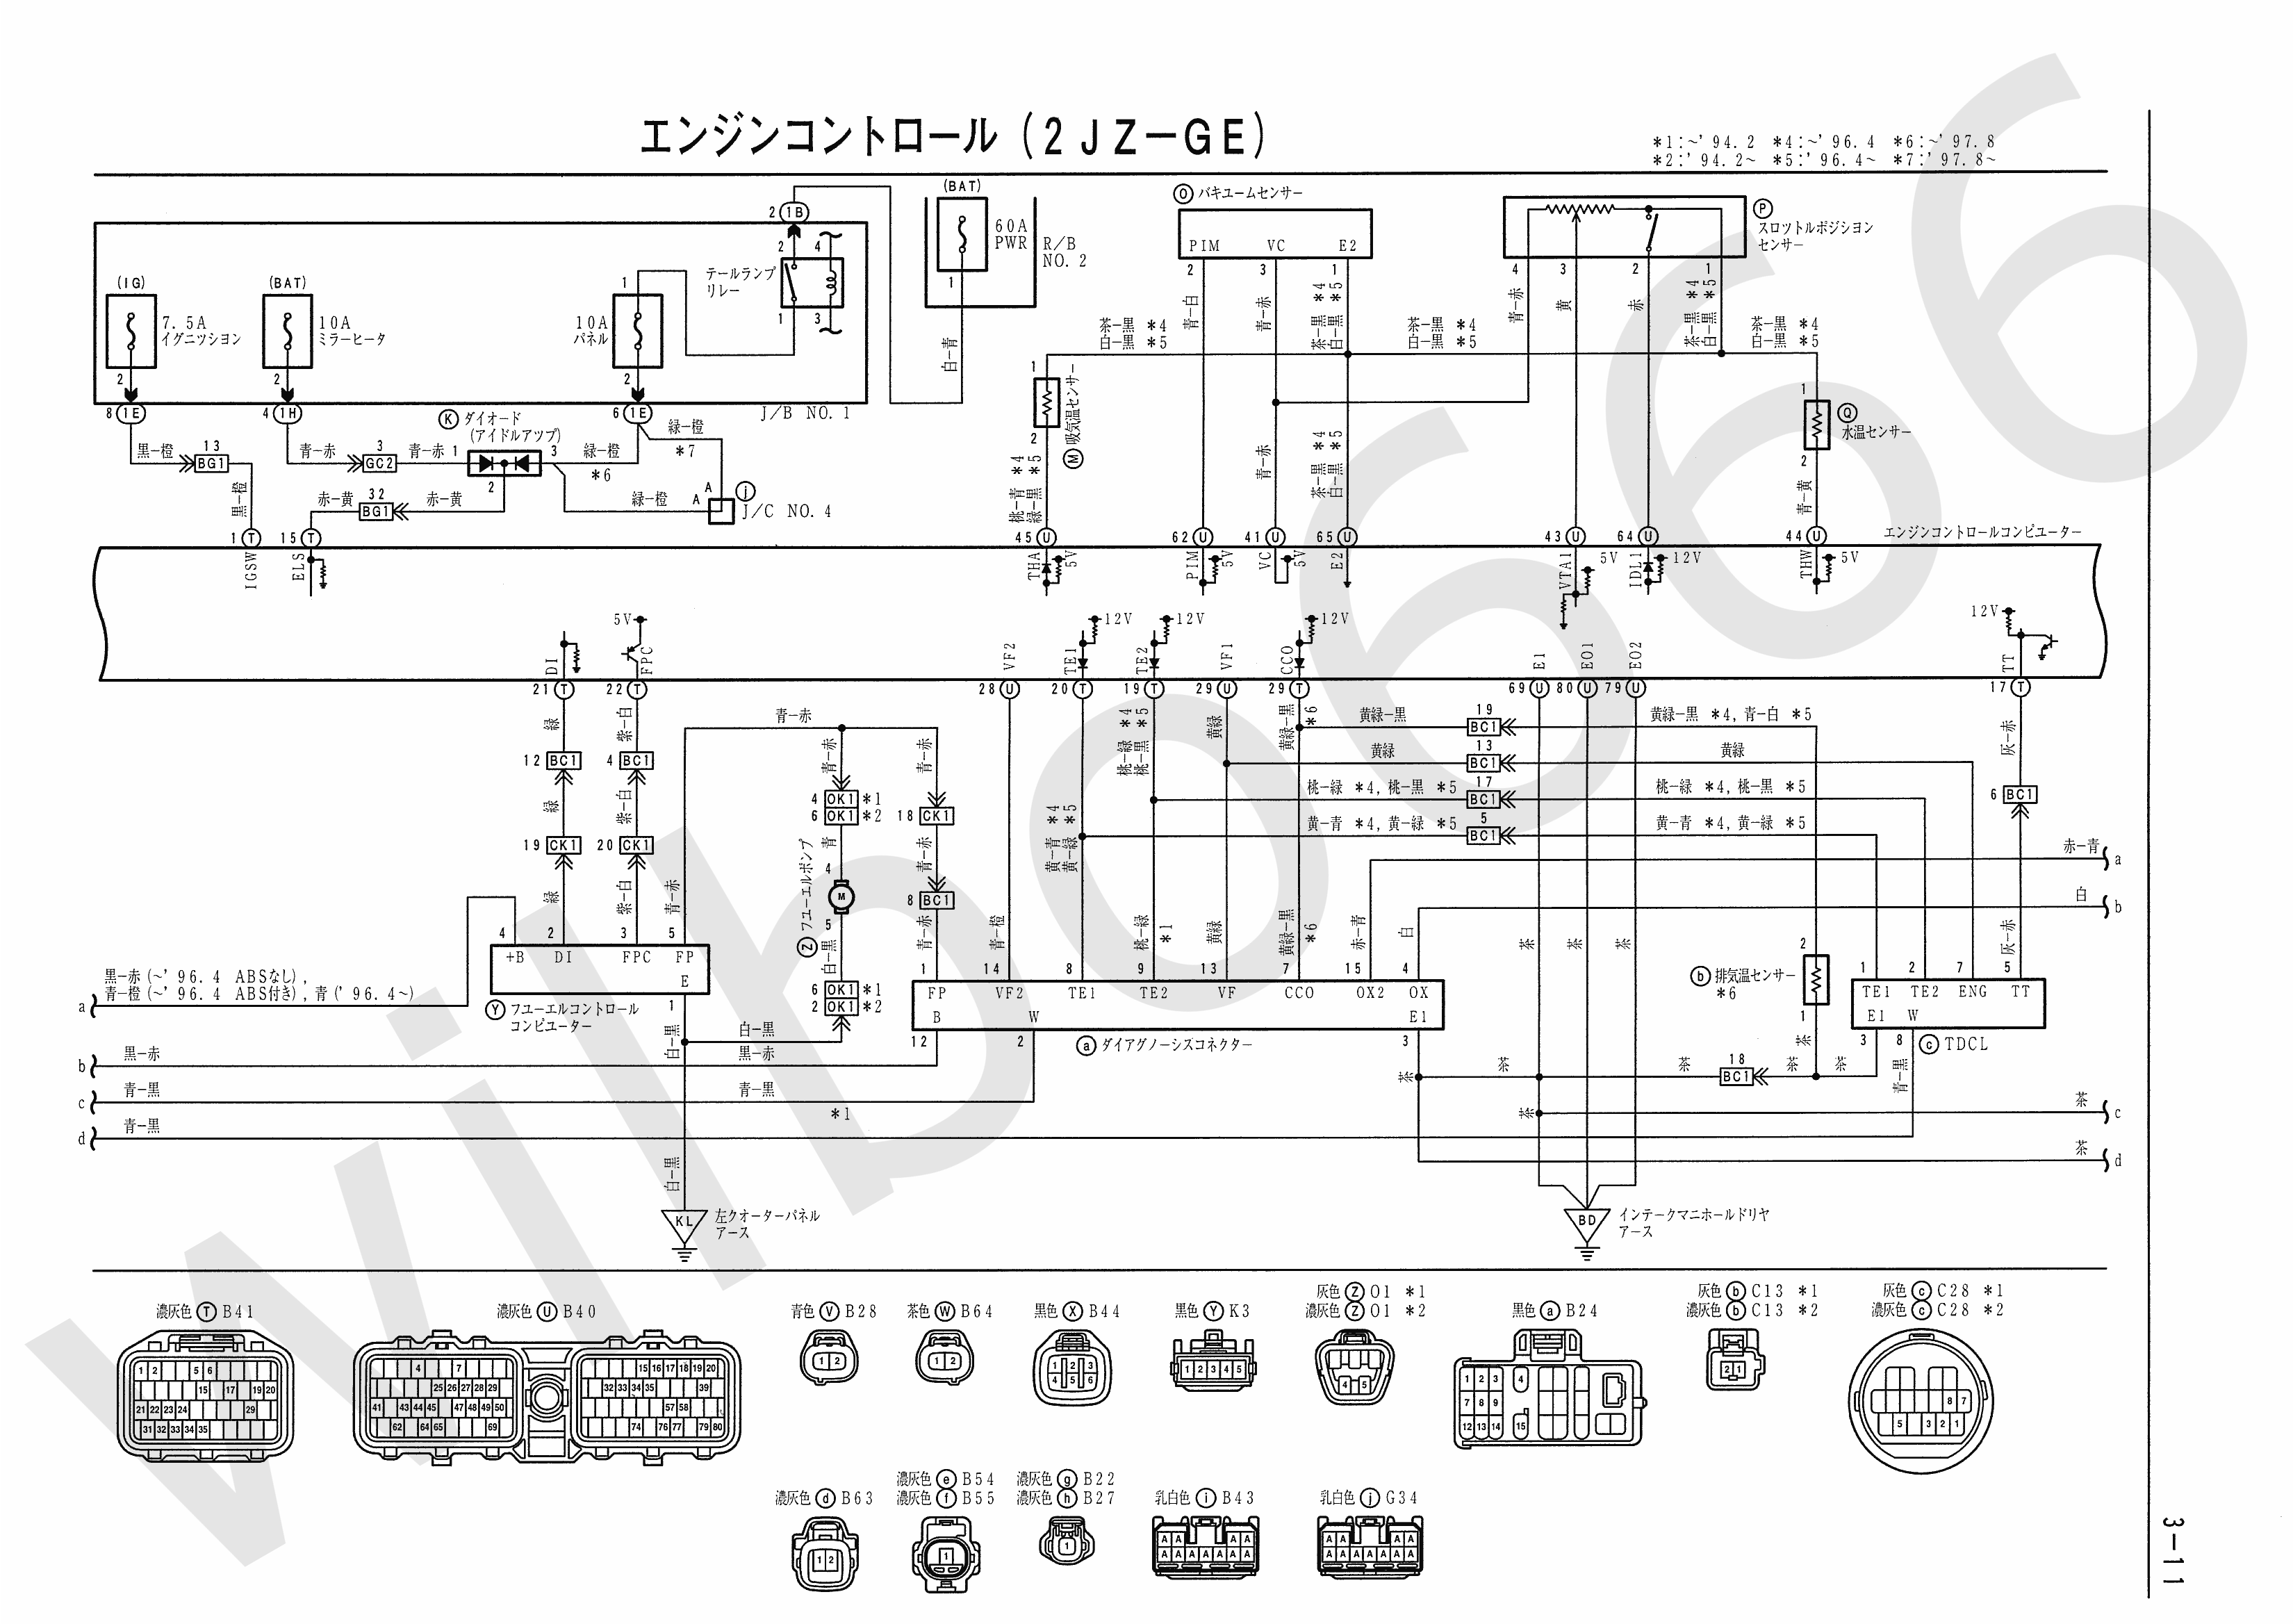 Enjoyable 89 Toyota Supra Engine Diagrams Wiring Diagram Wiring Cloud Hisonuggs Outletorg